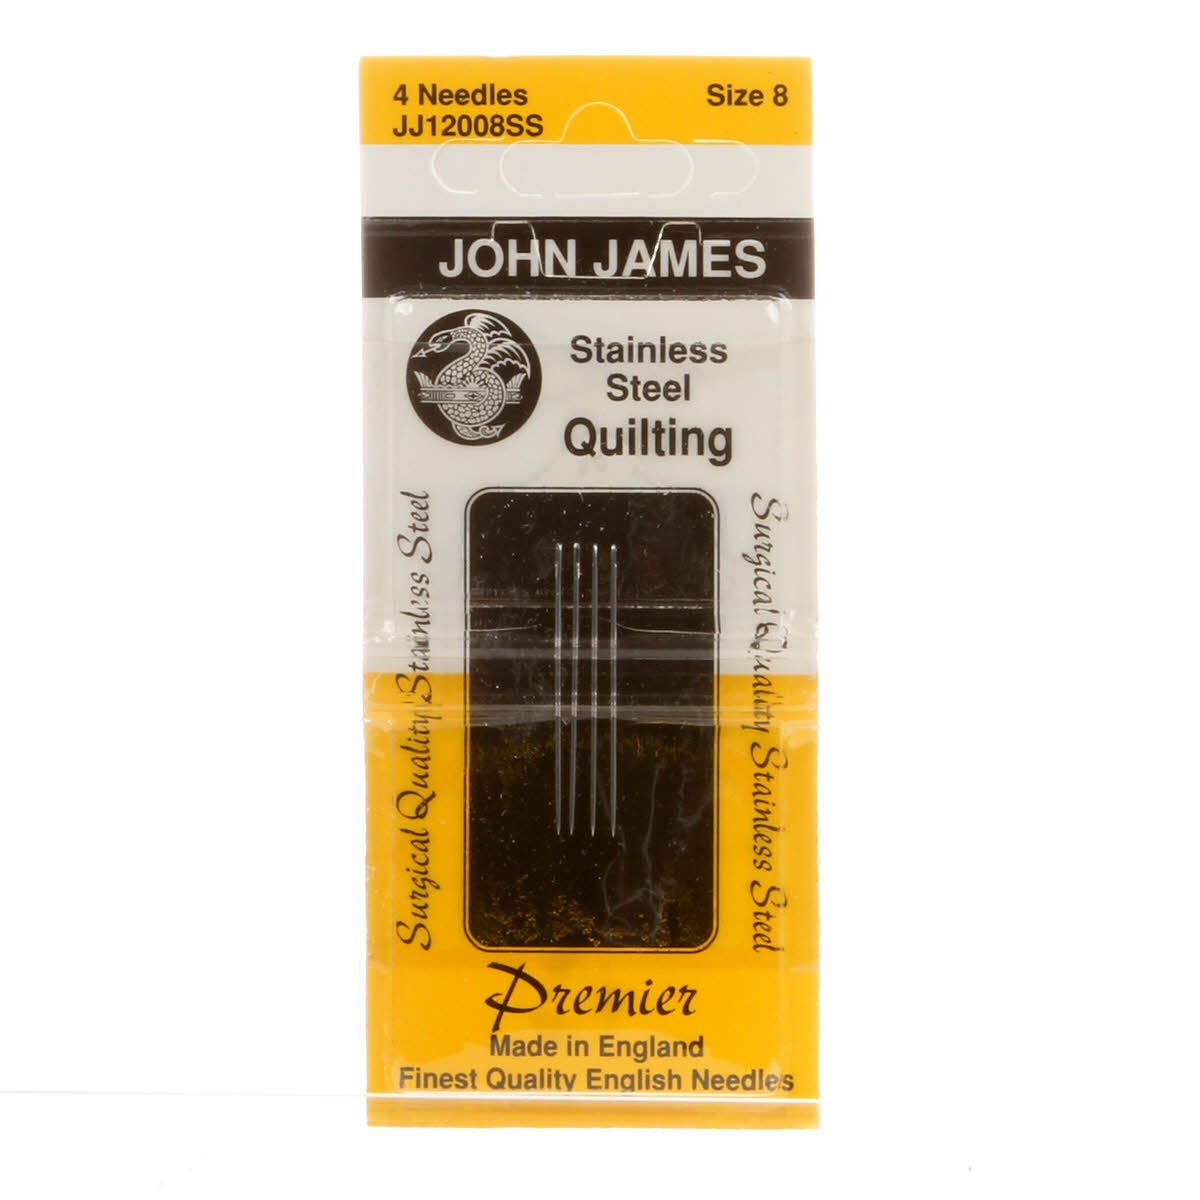 John James Needle -Quilt Sz8 Stainless Steel 4 Count Colonial Needle